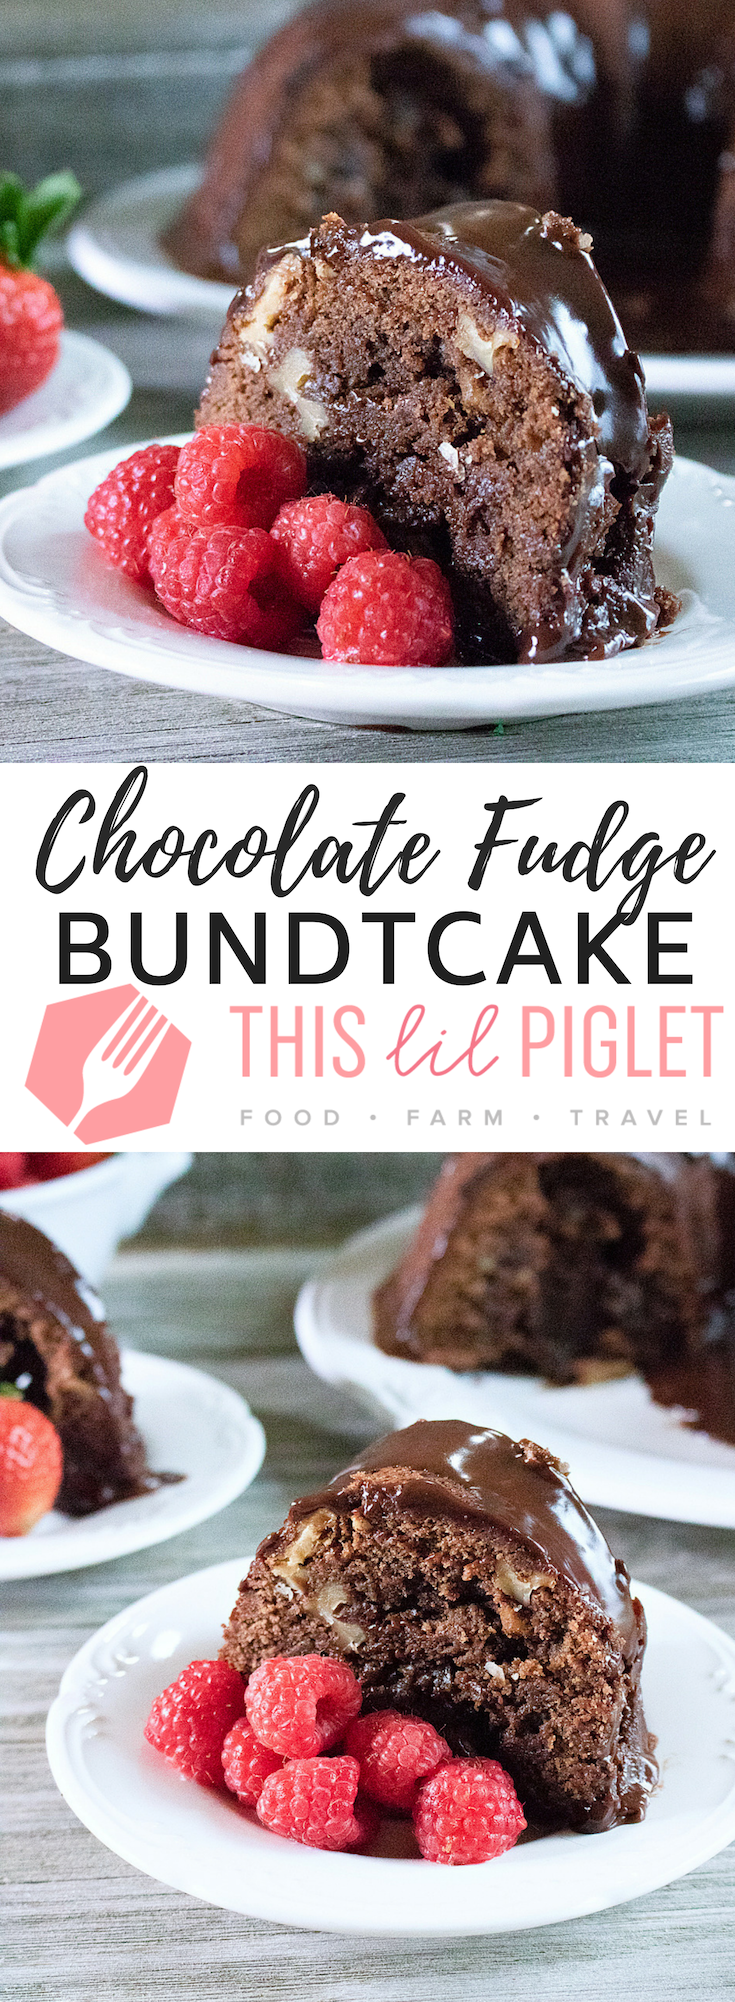 Chocolate Fudge Bundt Cake with Chocolate Ganache and Walnuts // thislilpiglet.net